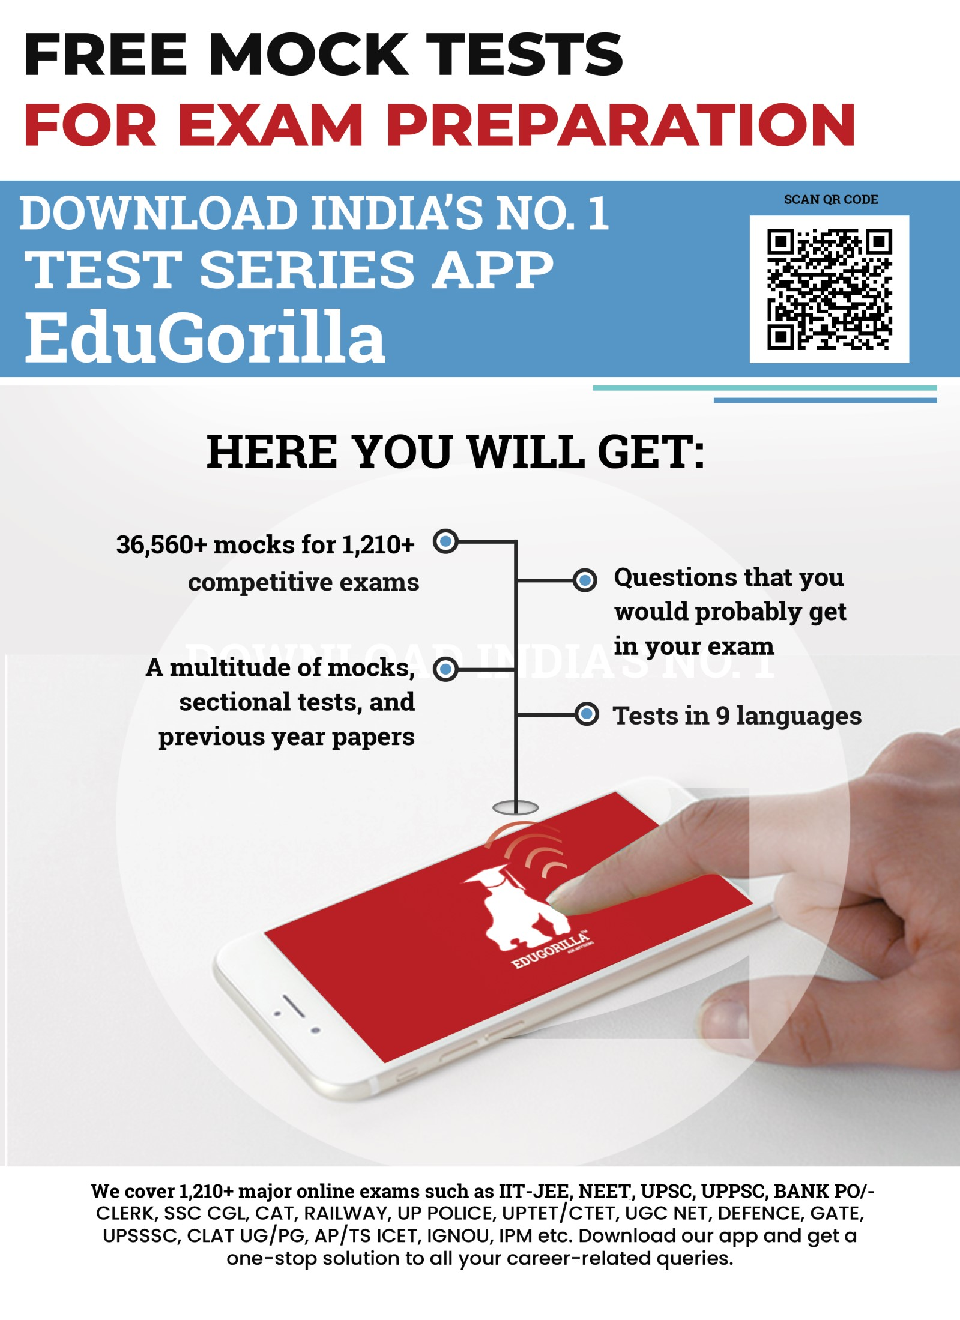 EduGorilla LIC Housing Finance Assistant Manager (Legal Officer) 2020  - 5 Mock Tests For Complete Preparation  - Page 2